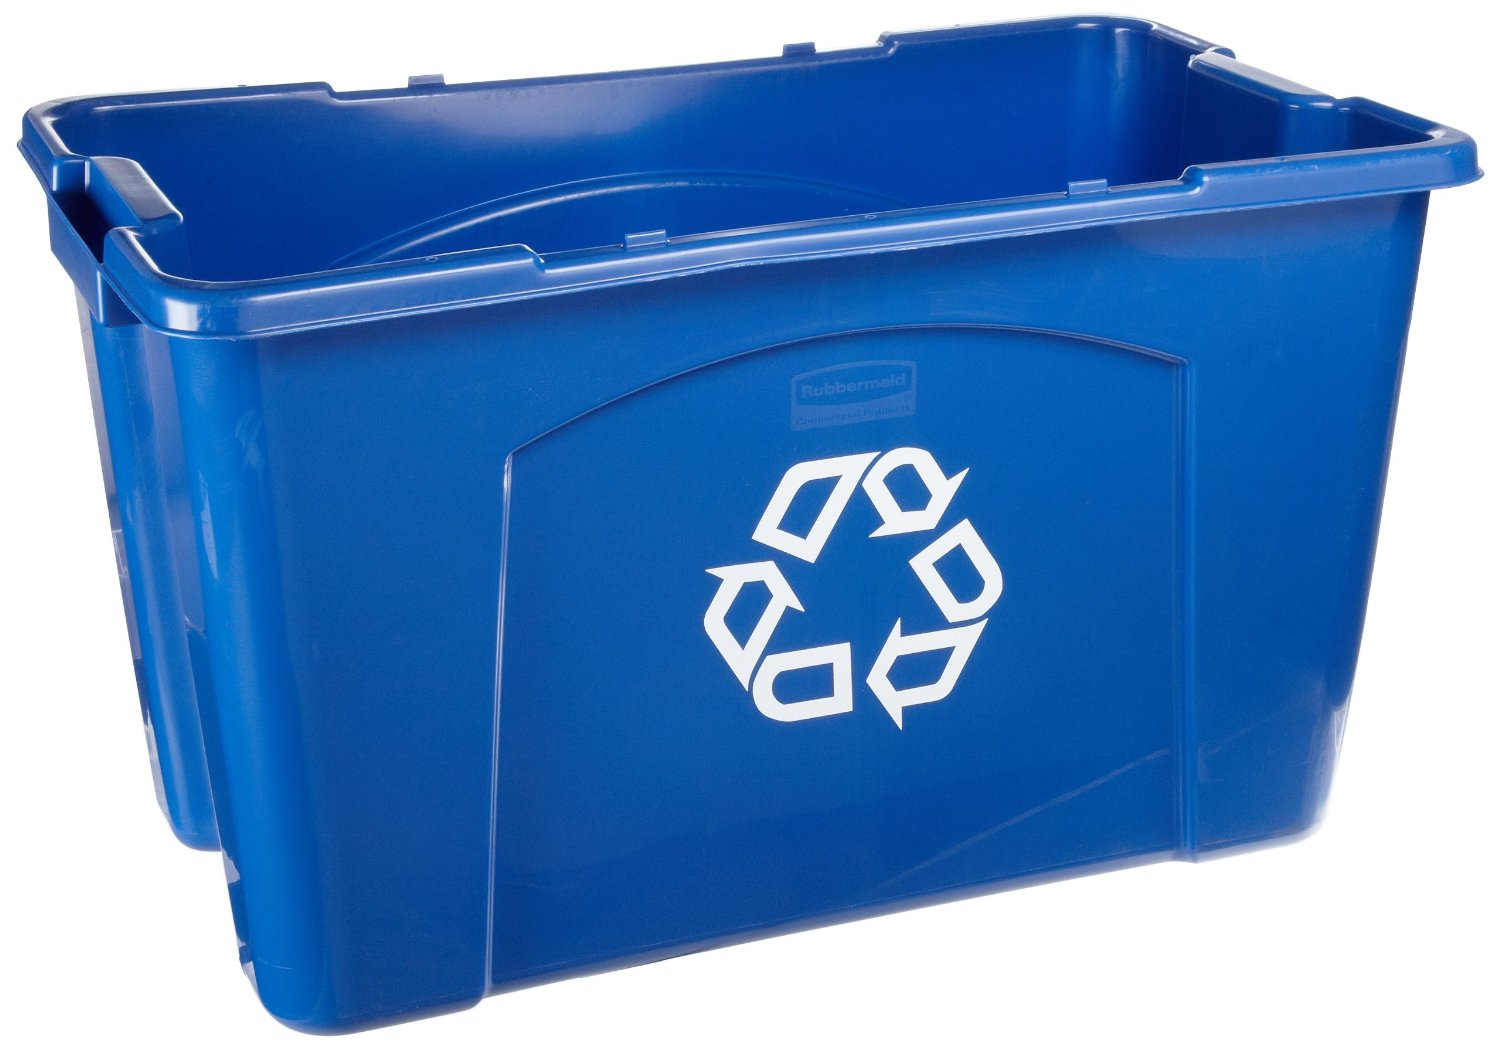 Clipart Of Recyle Bin 20 Free Cliparts